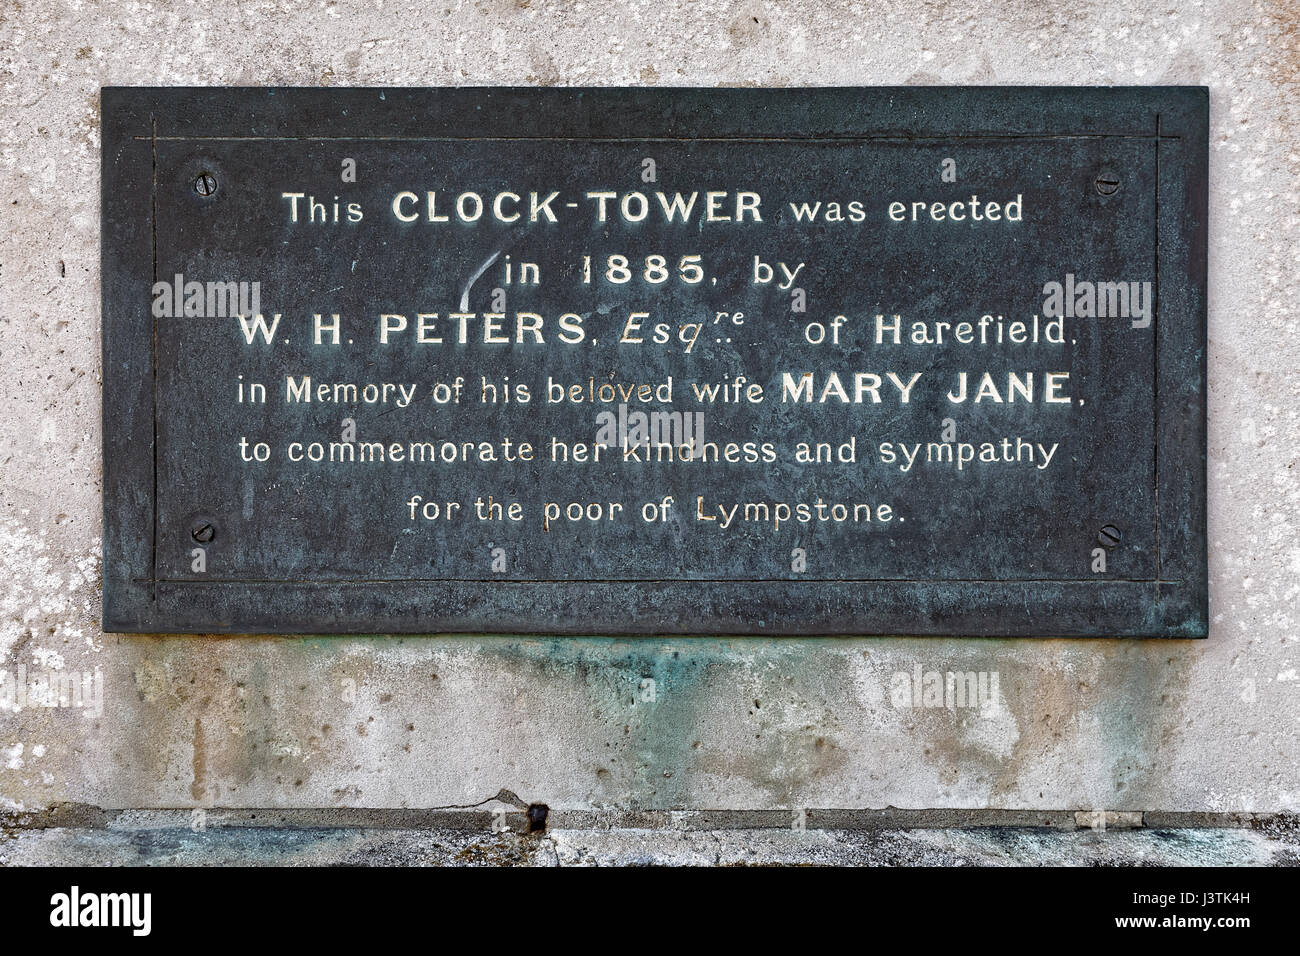 Peter's Tower Clock Tower Devon Memorial Plaque - Stock Image